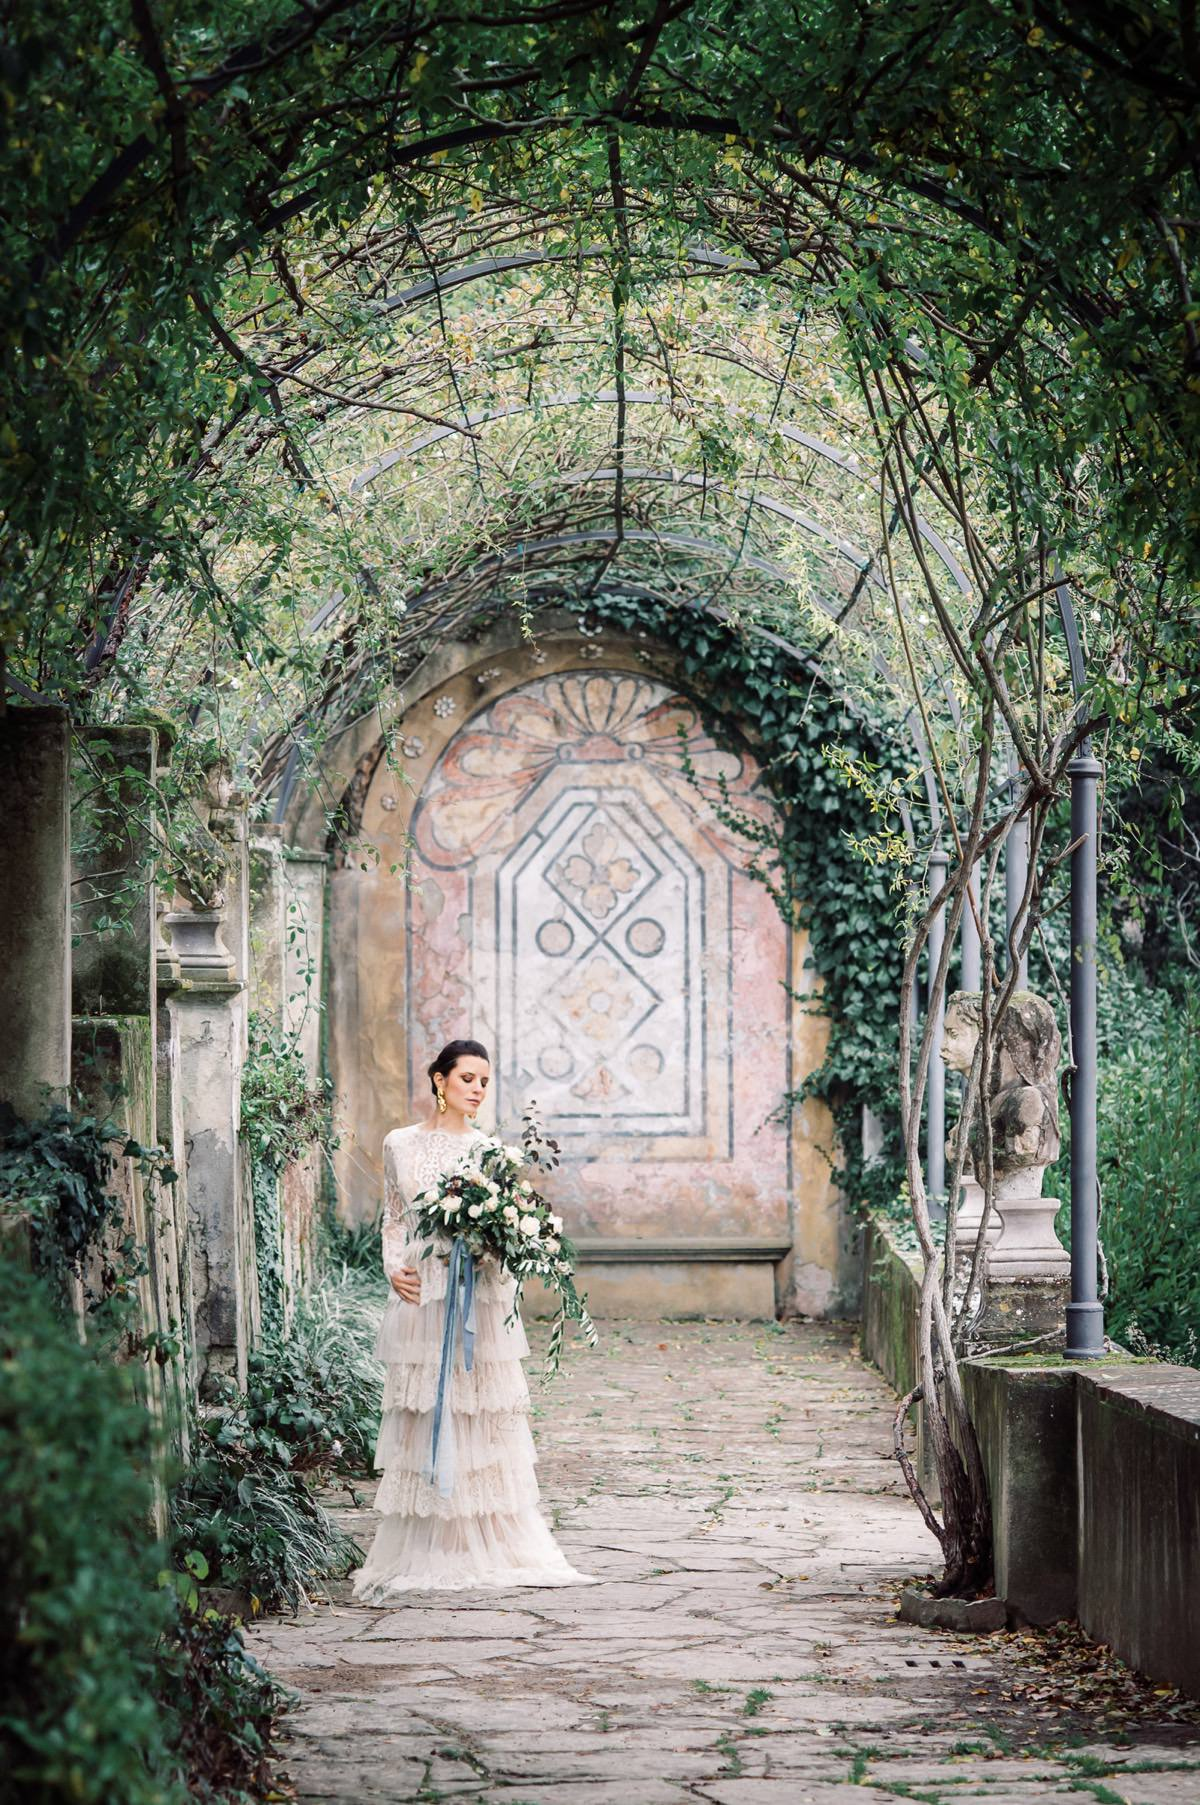 Styled Shoot: Artistic Bridal Inspiration in the Heart of Florence